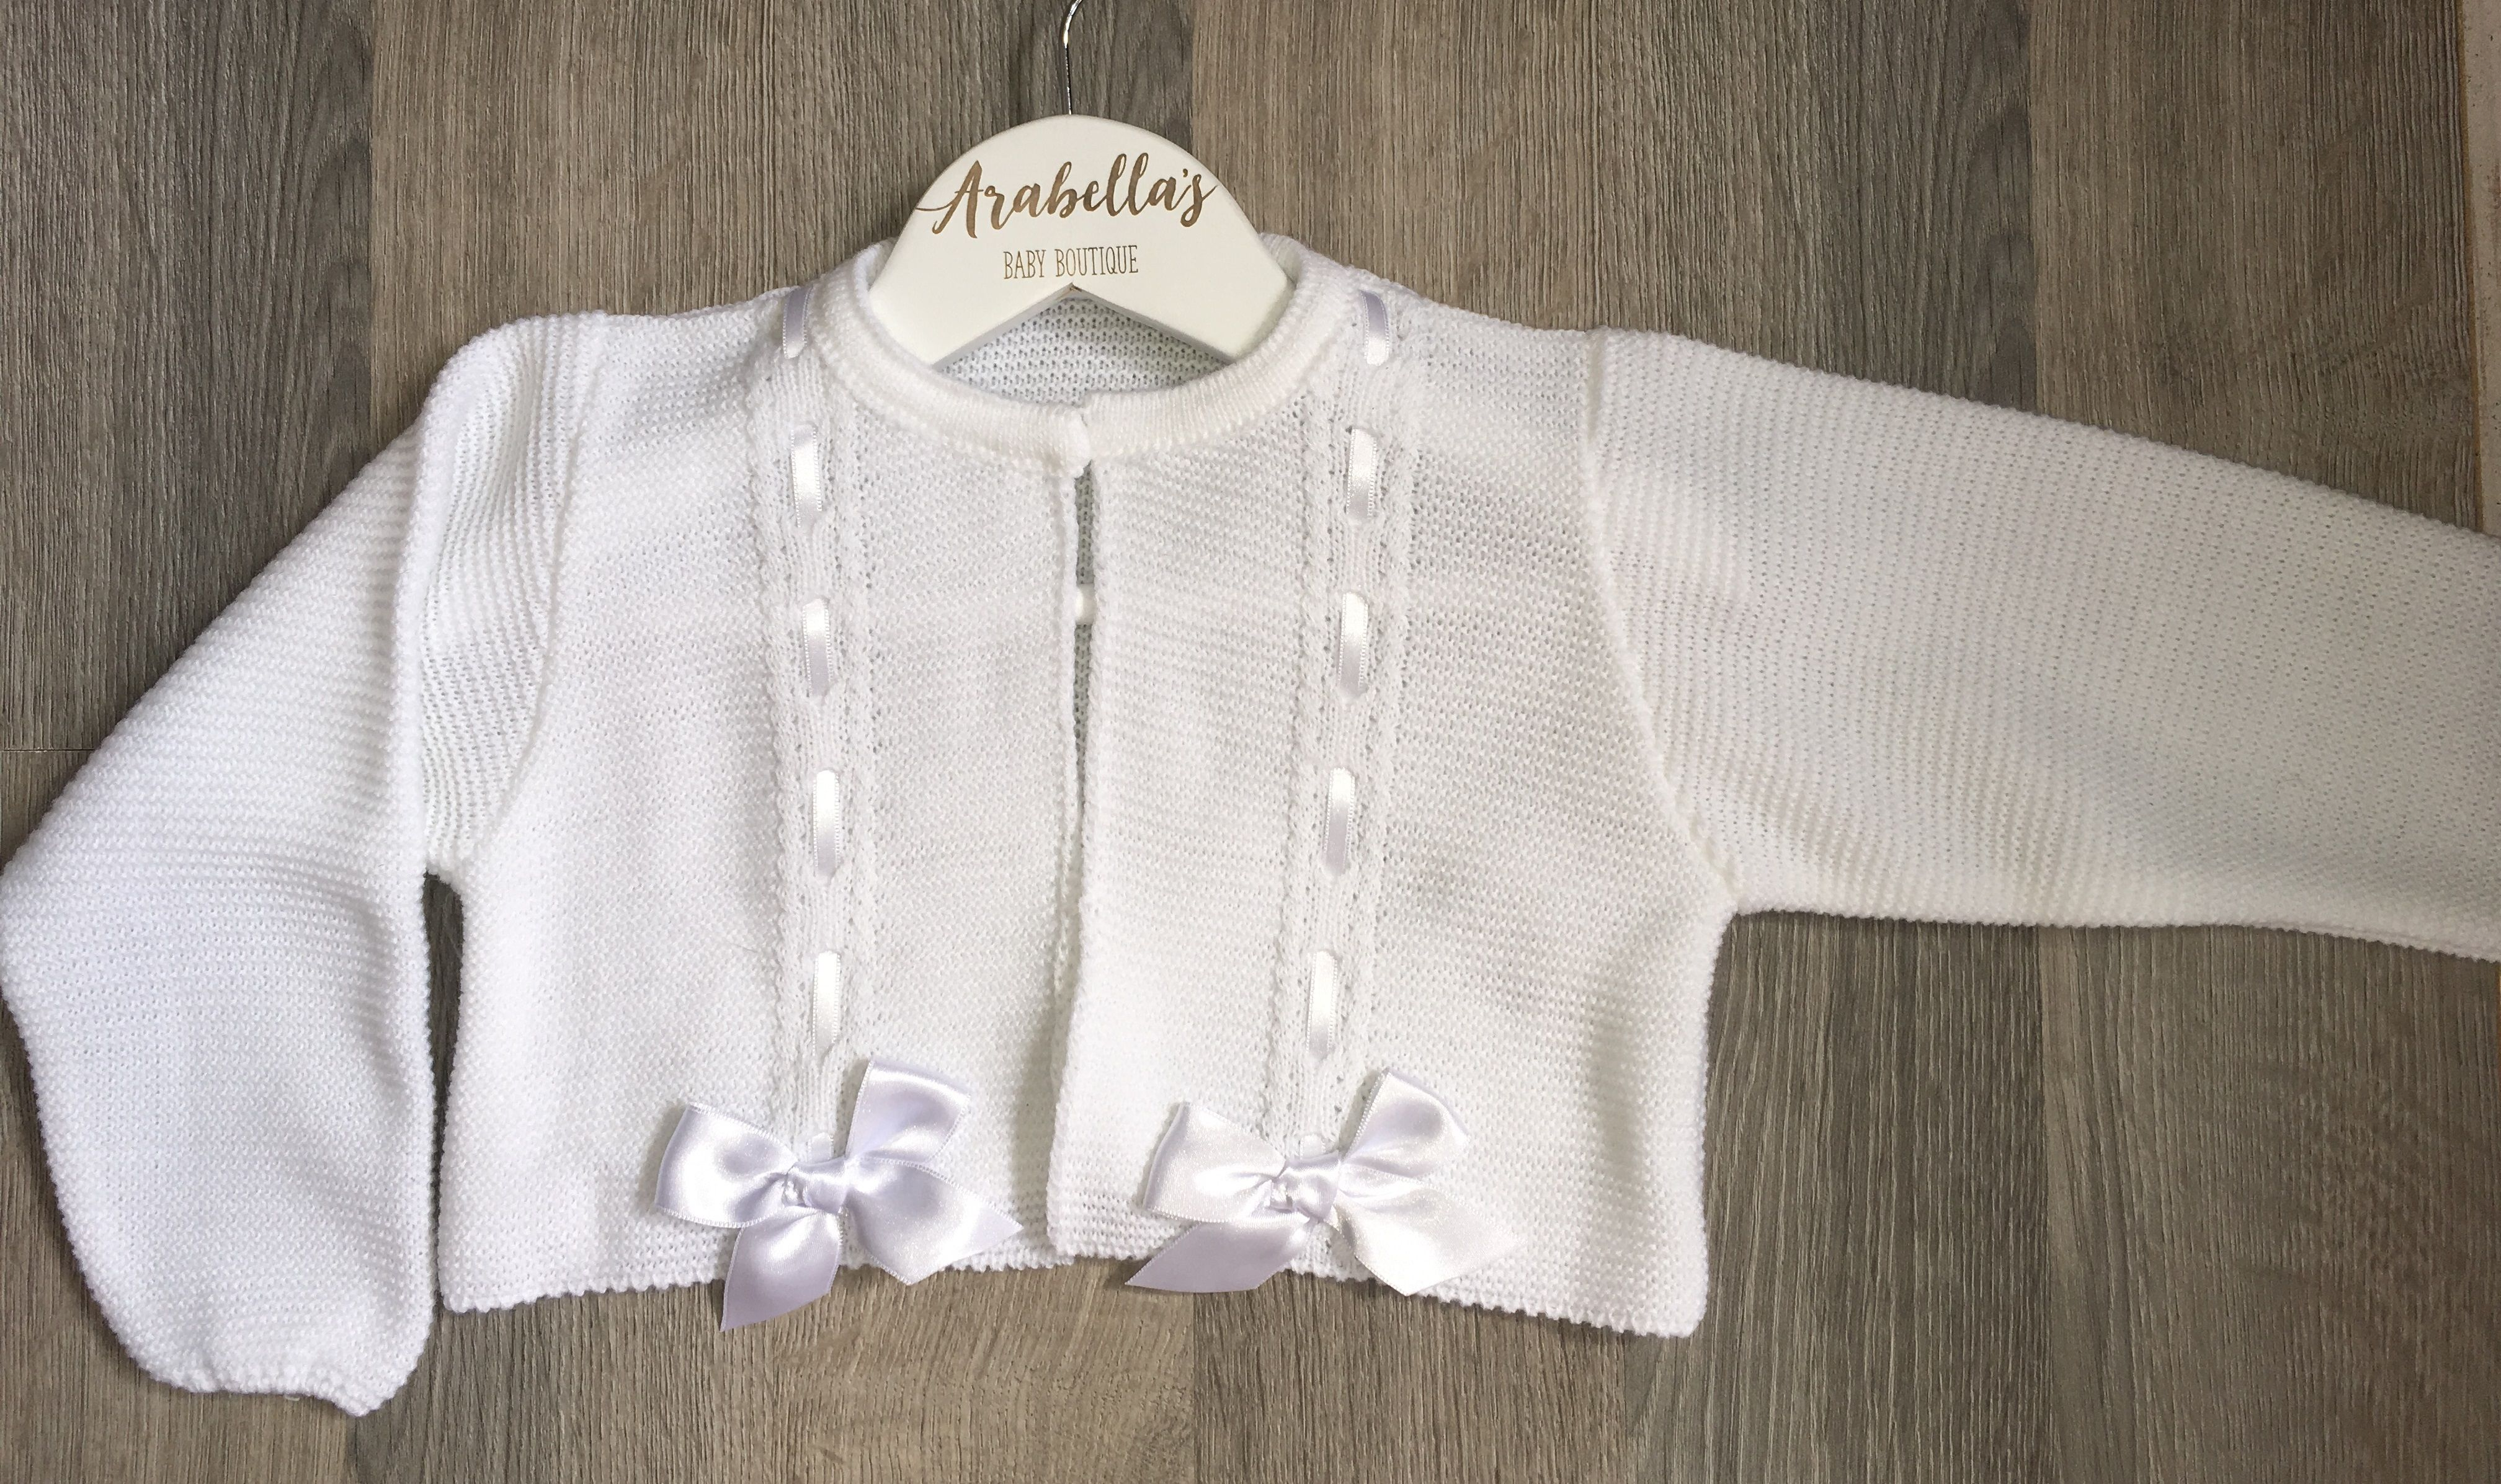 1a0d47197 Spanish knitted white bow cardigan Spanish girls Arabellas Baby ...